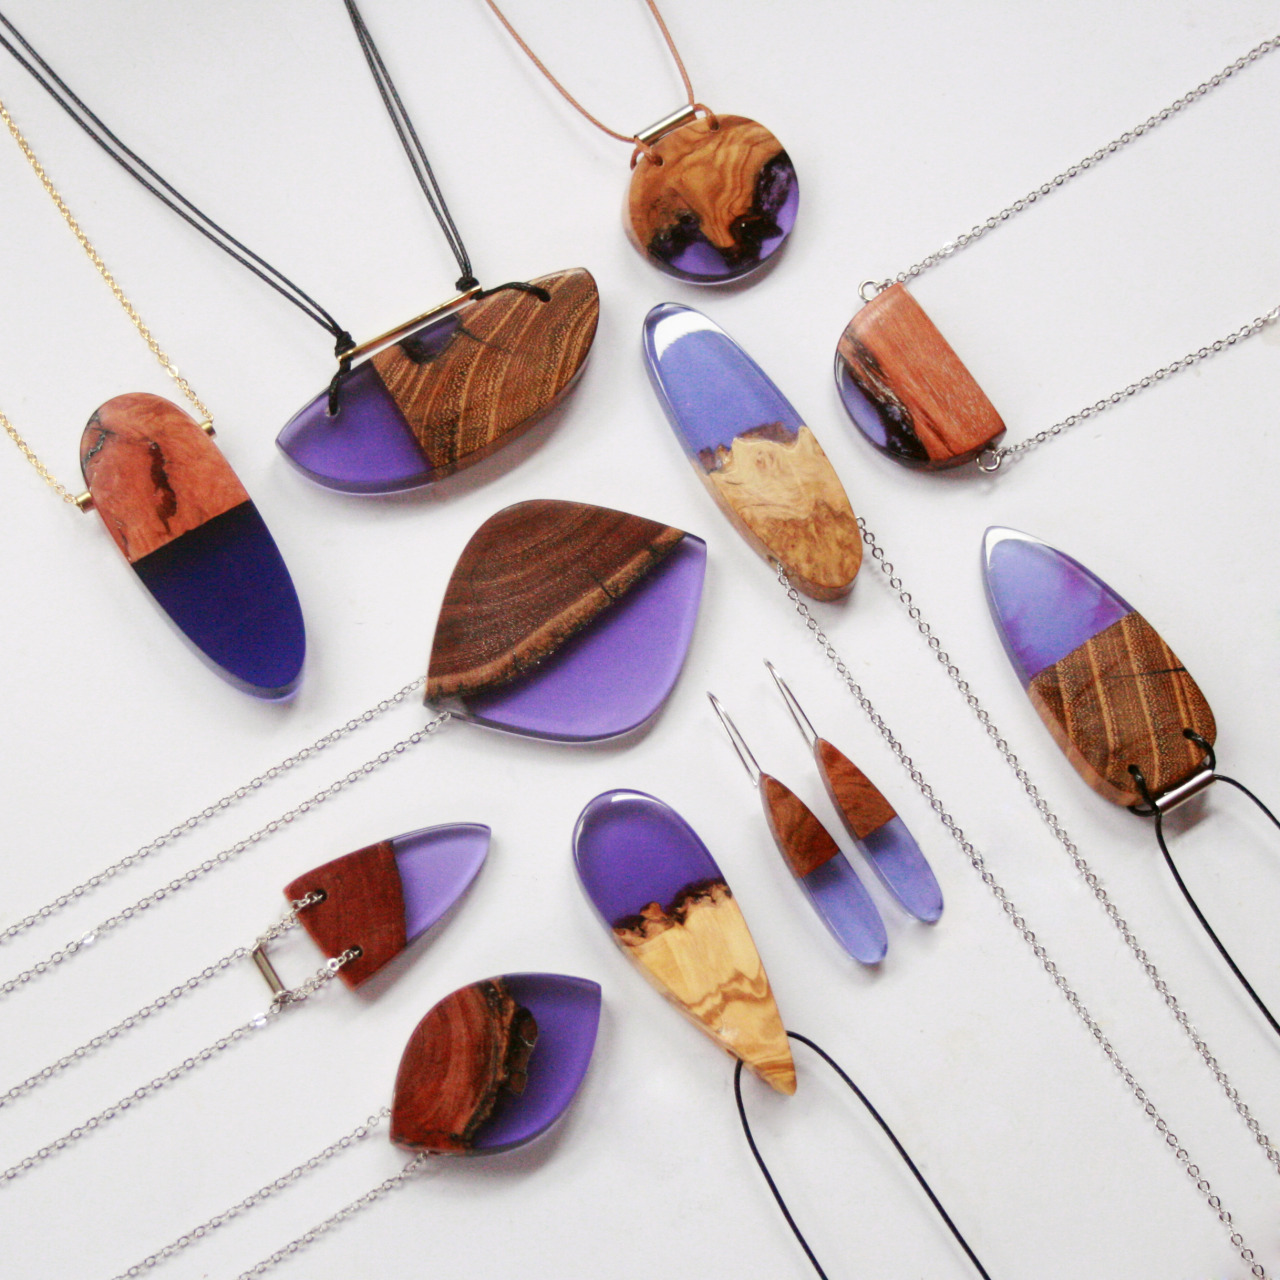 Jagged wood fragments find new purpose when fused with for How to make a wooden pendant